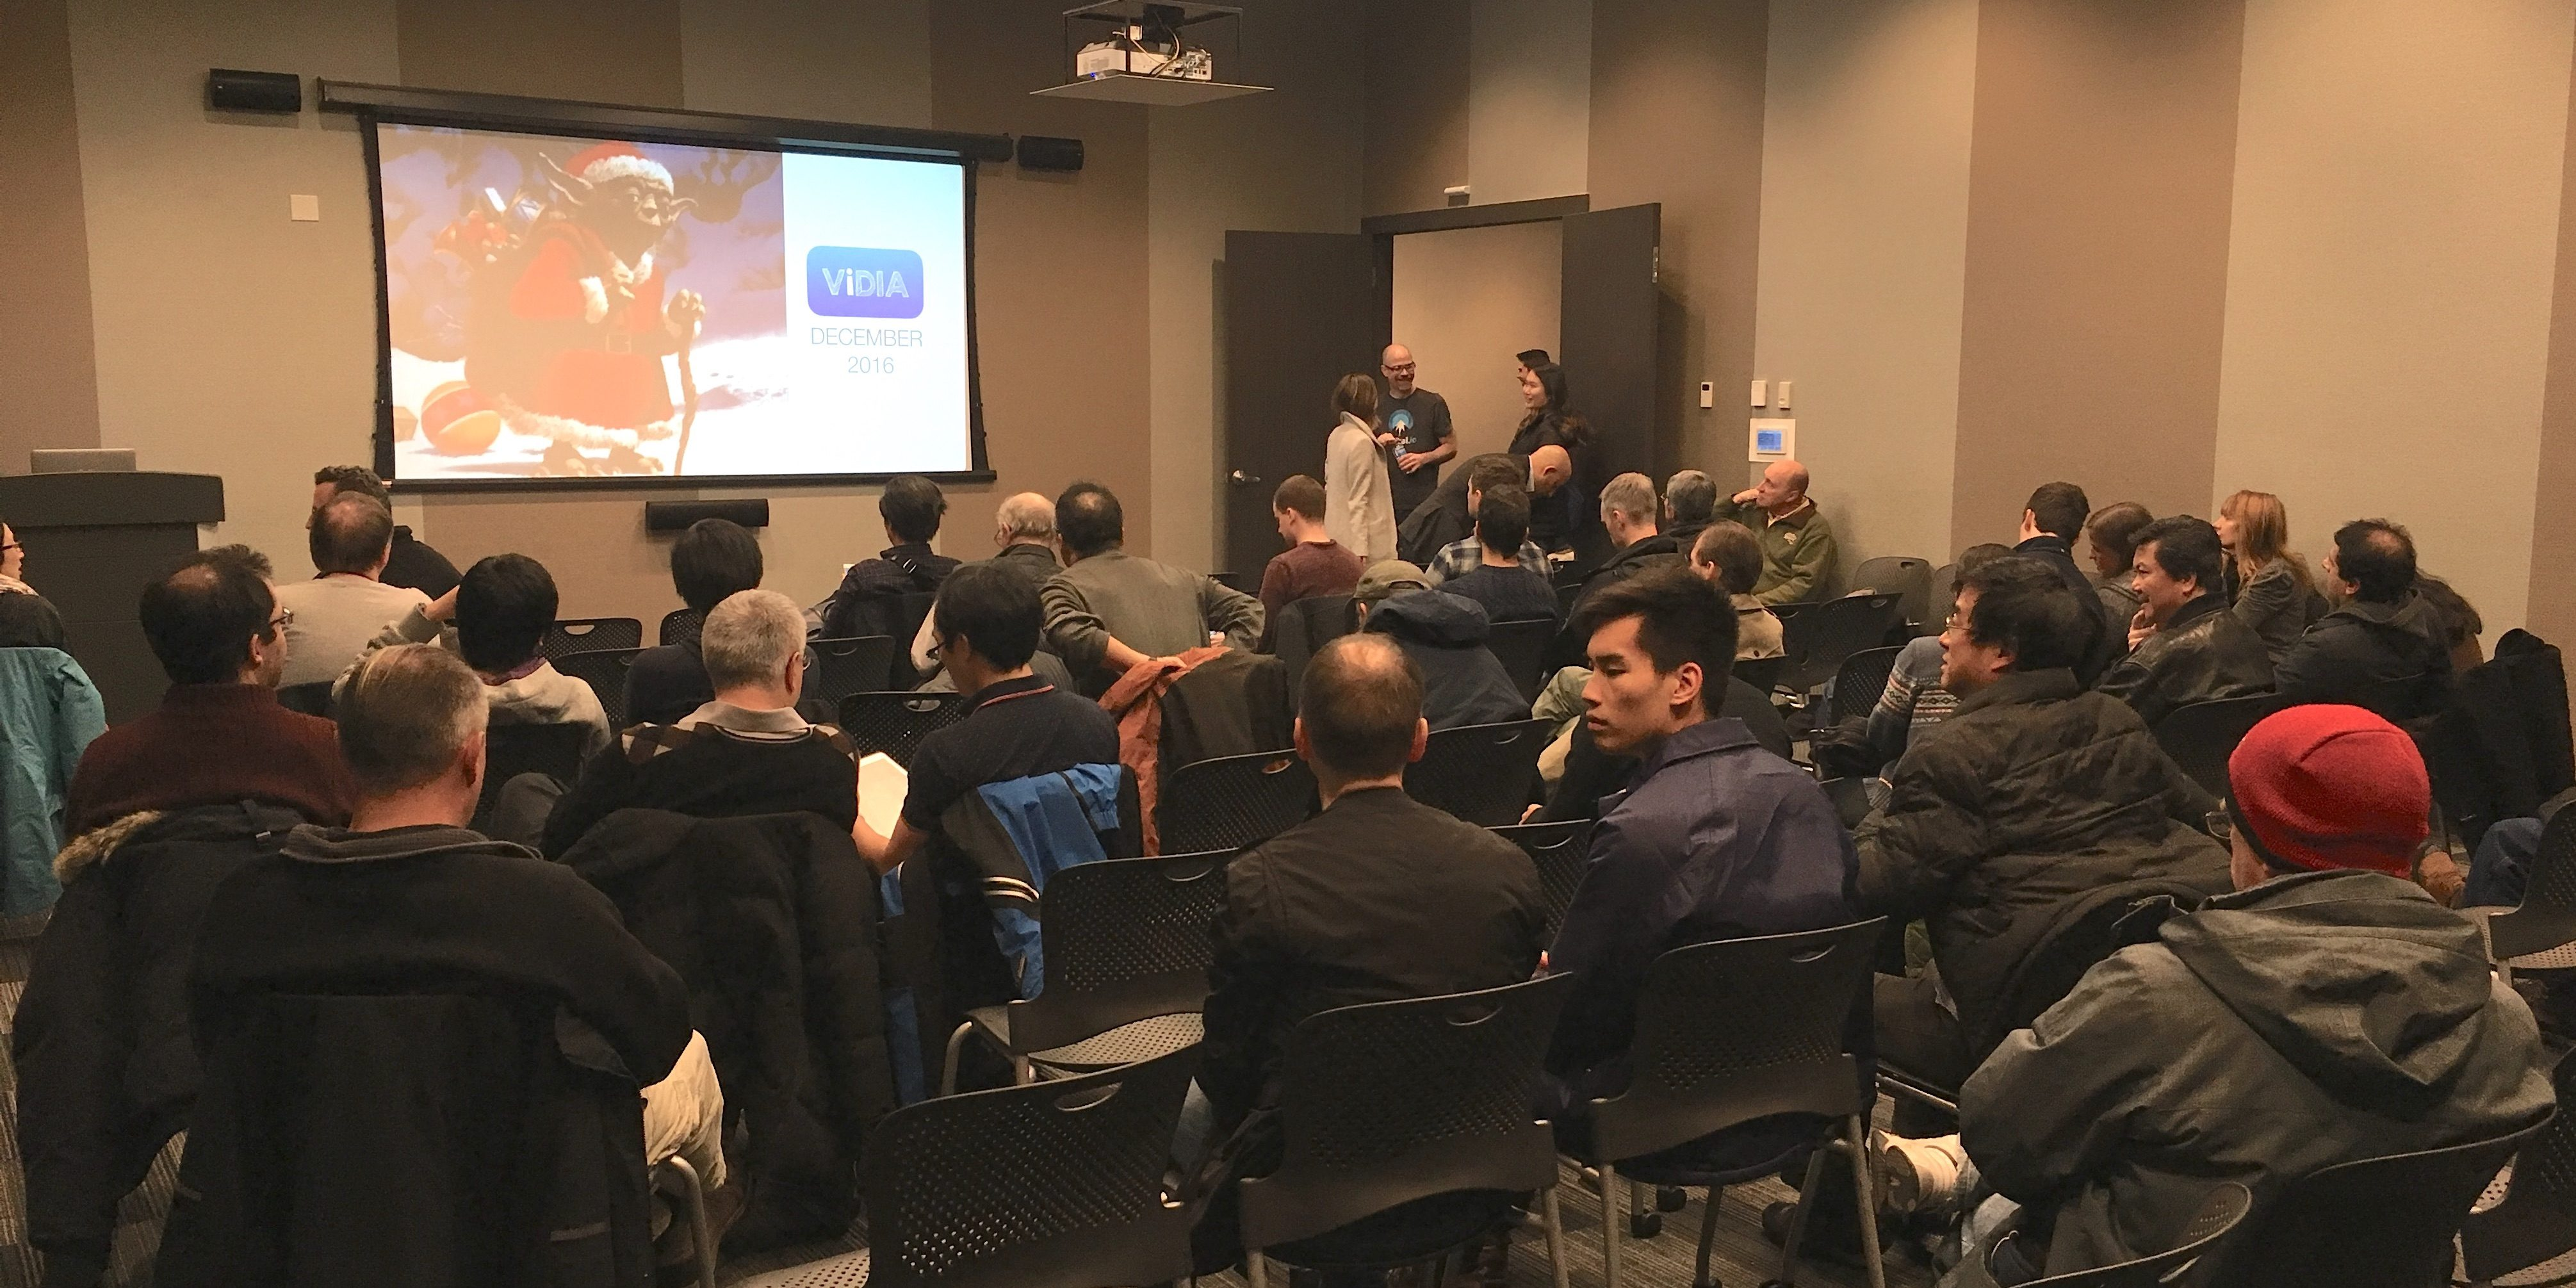 ViDIA Meetup in vancouver